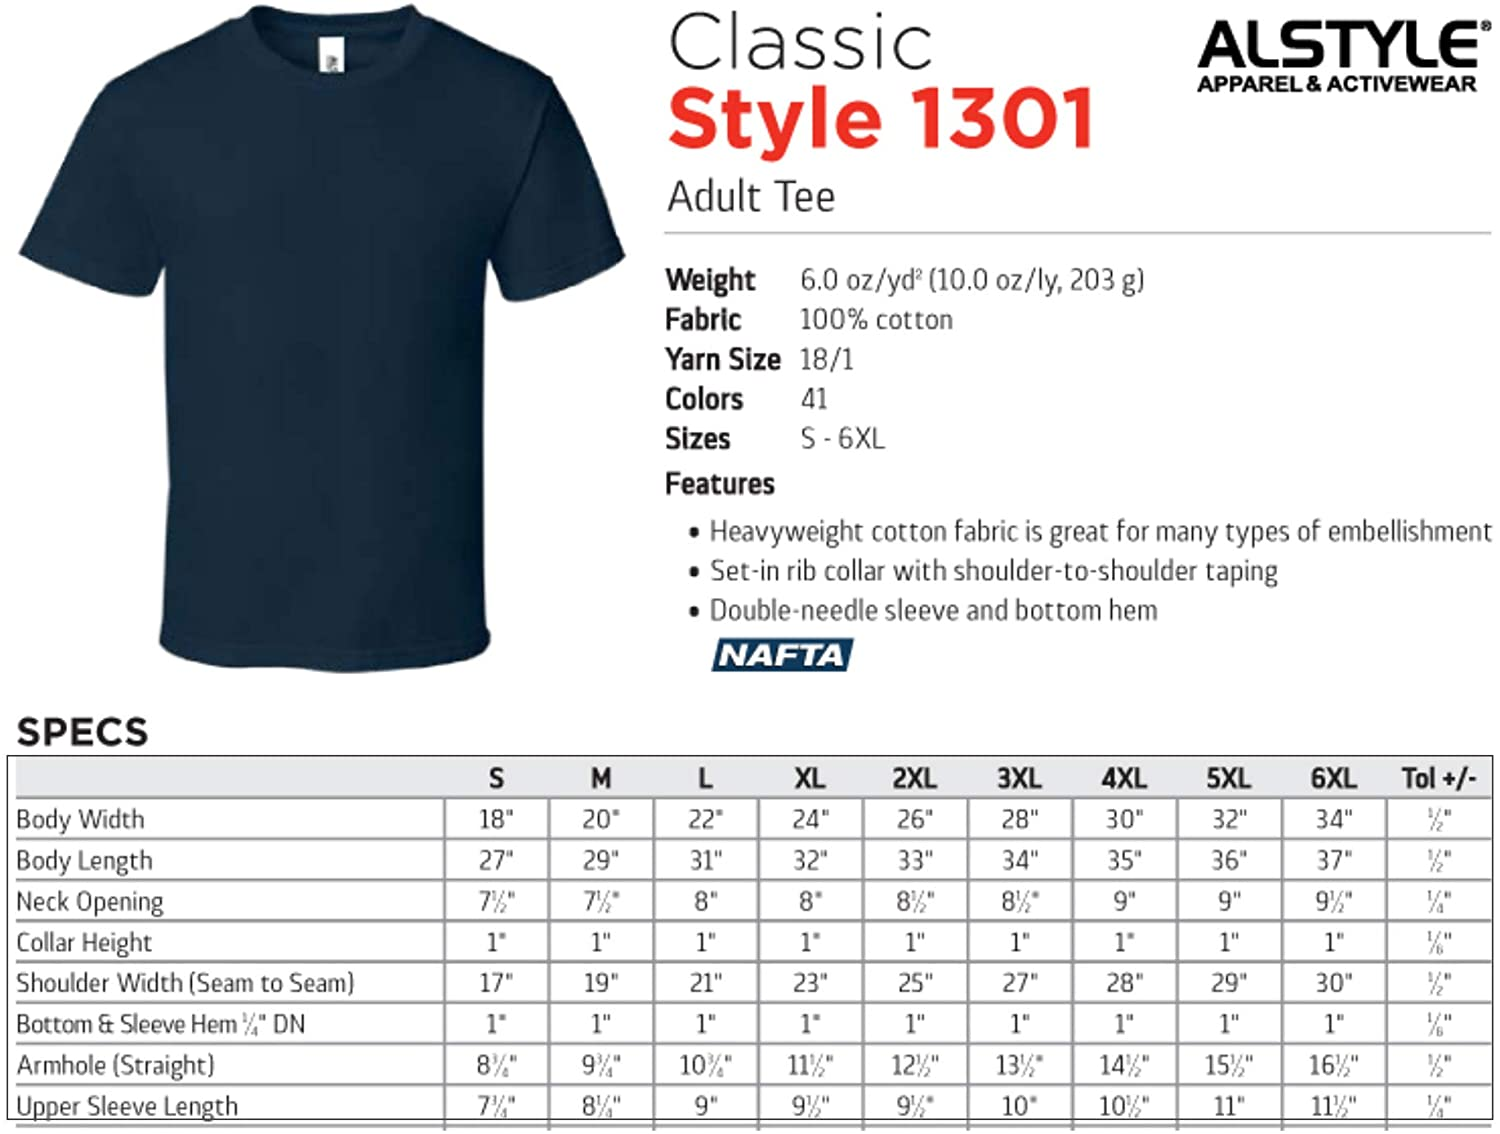 alstyle classic size chart.jpg